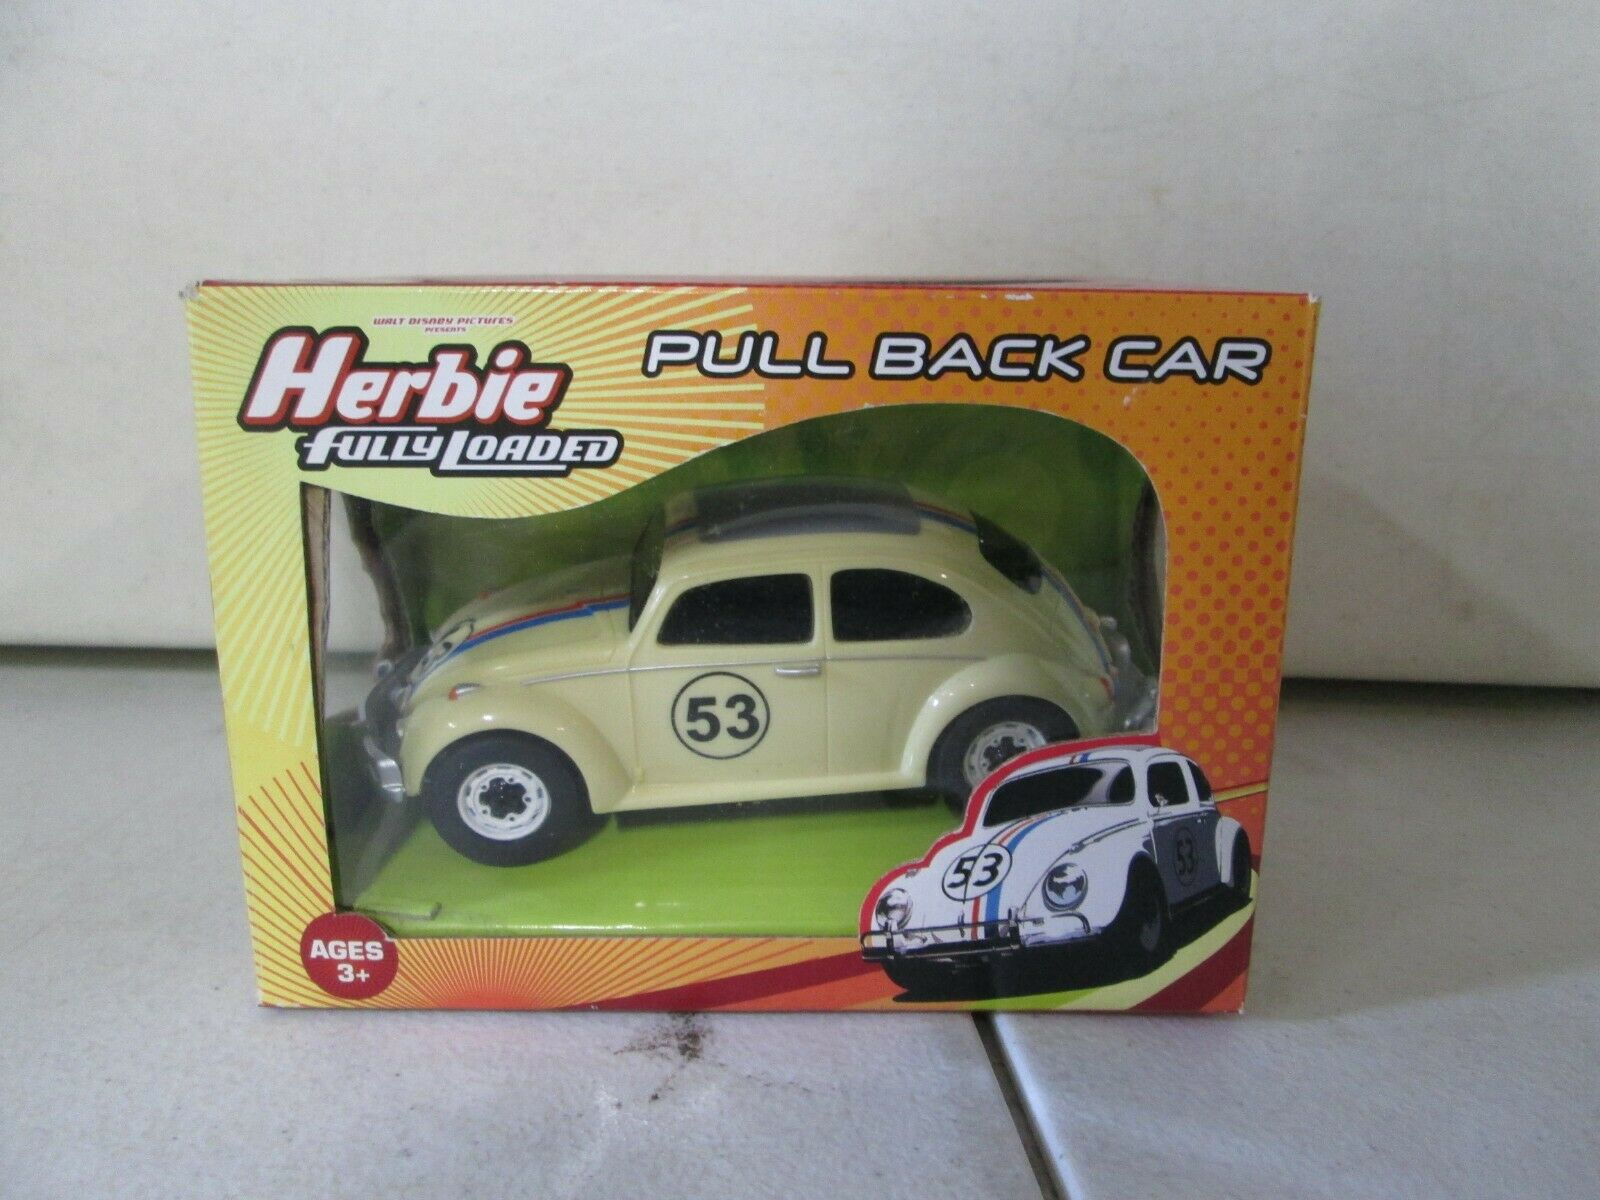 Planet Toys Herbie Fully Loaded Pull Back Car